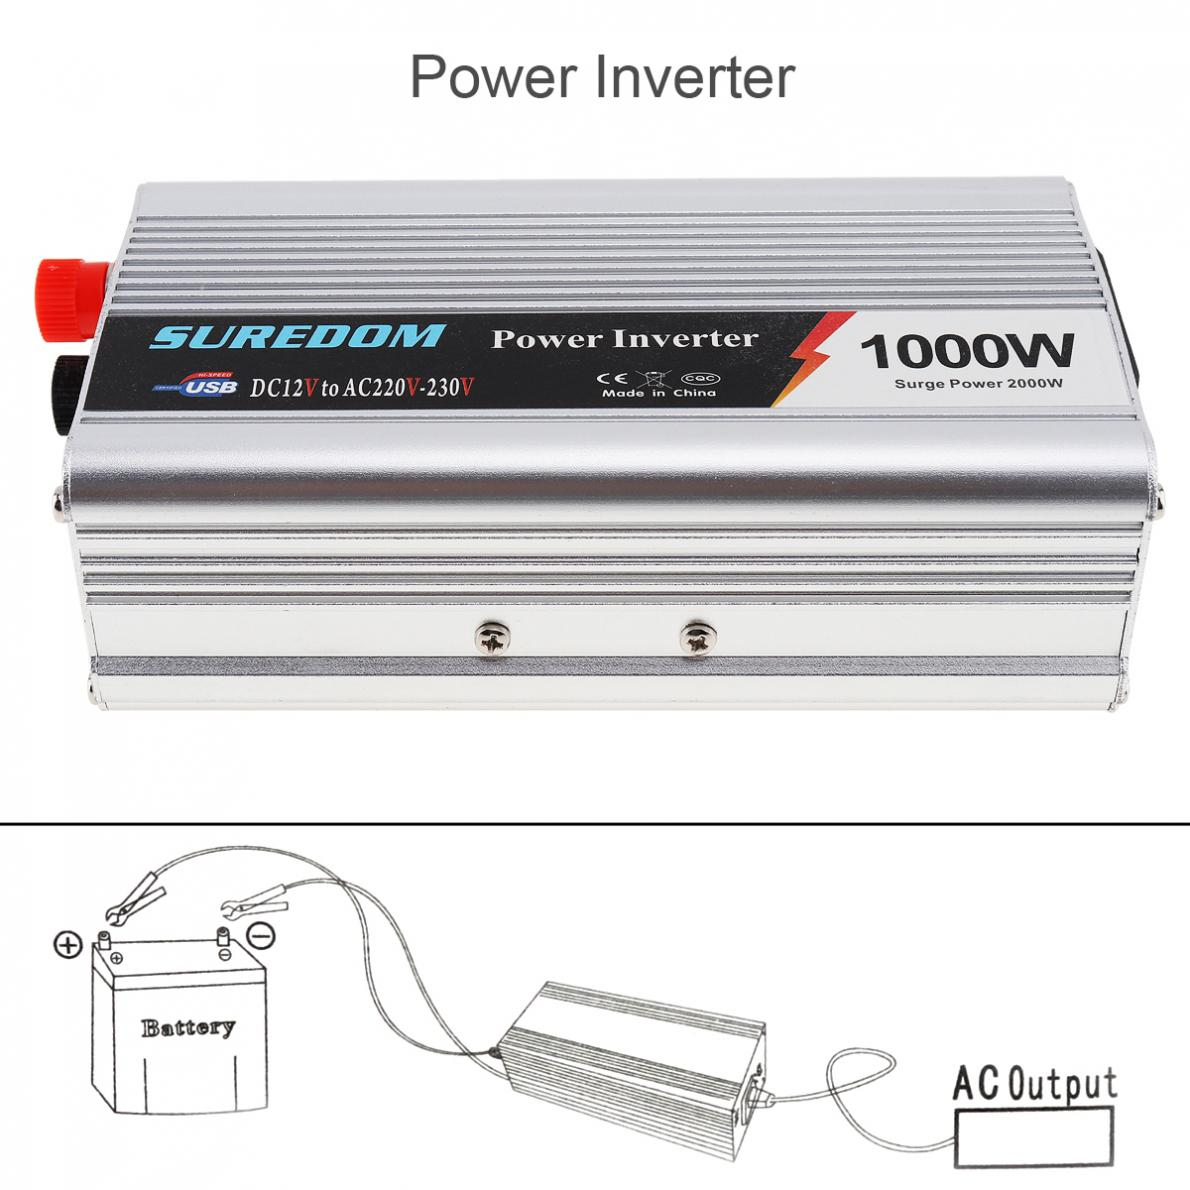 USB 1000W Car Power Inverter Watt DC 12V to AC 220V Vehicle Battery Converter Power Supply On-Board Charger Switch